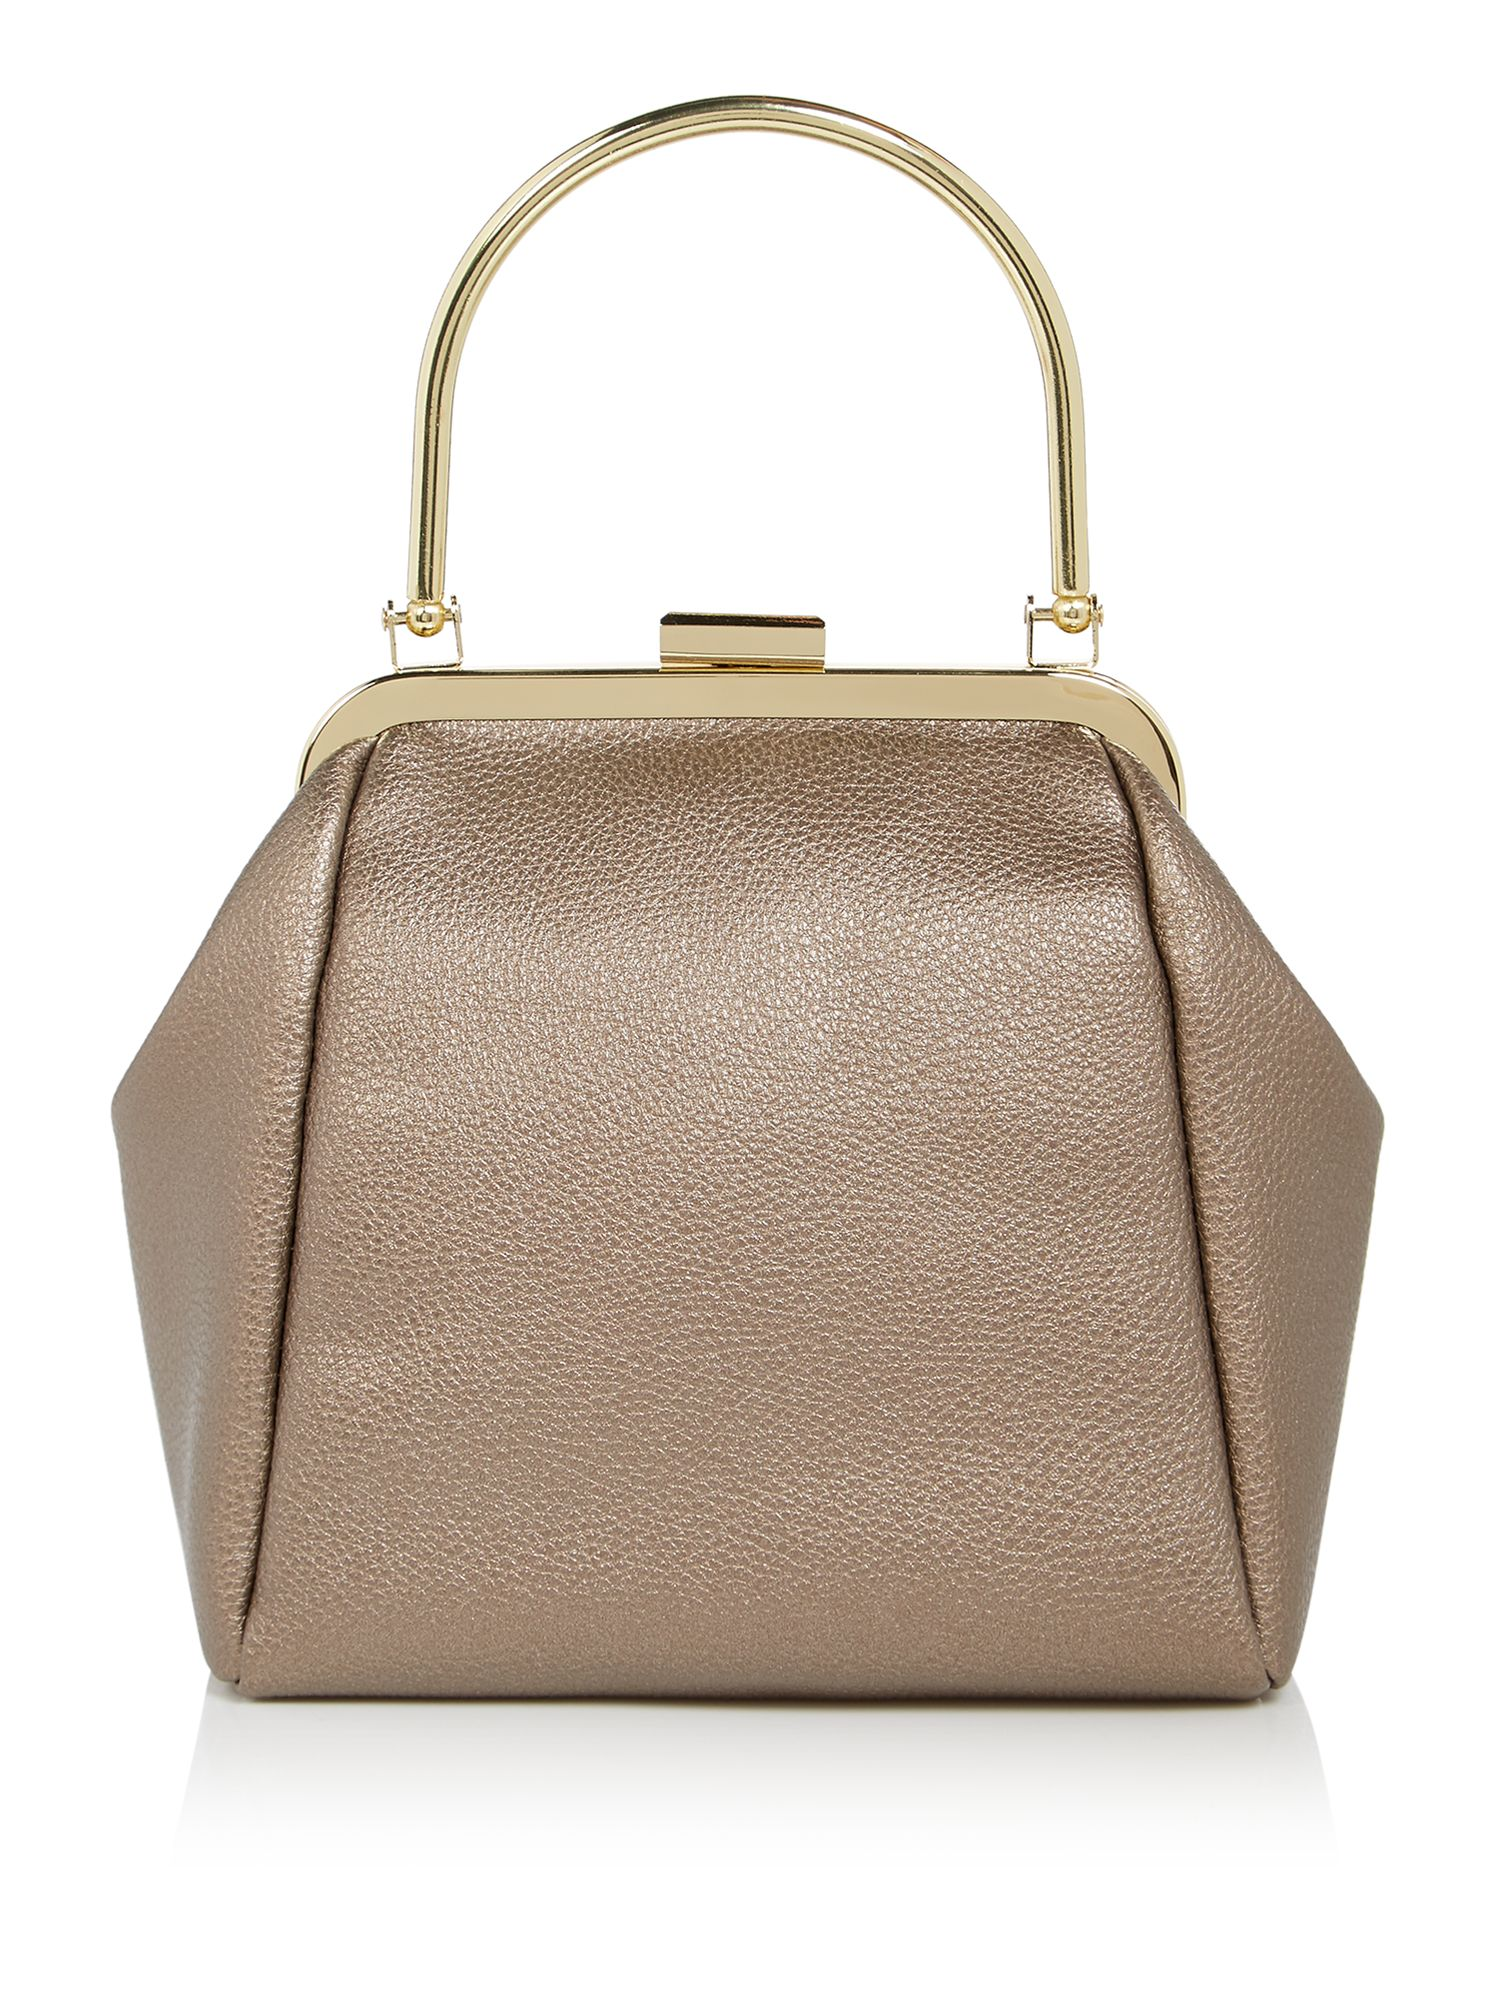 Therapy Ami occasion frame bag, Gold